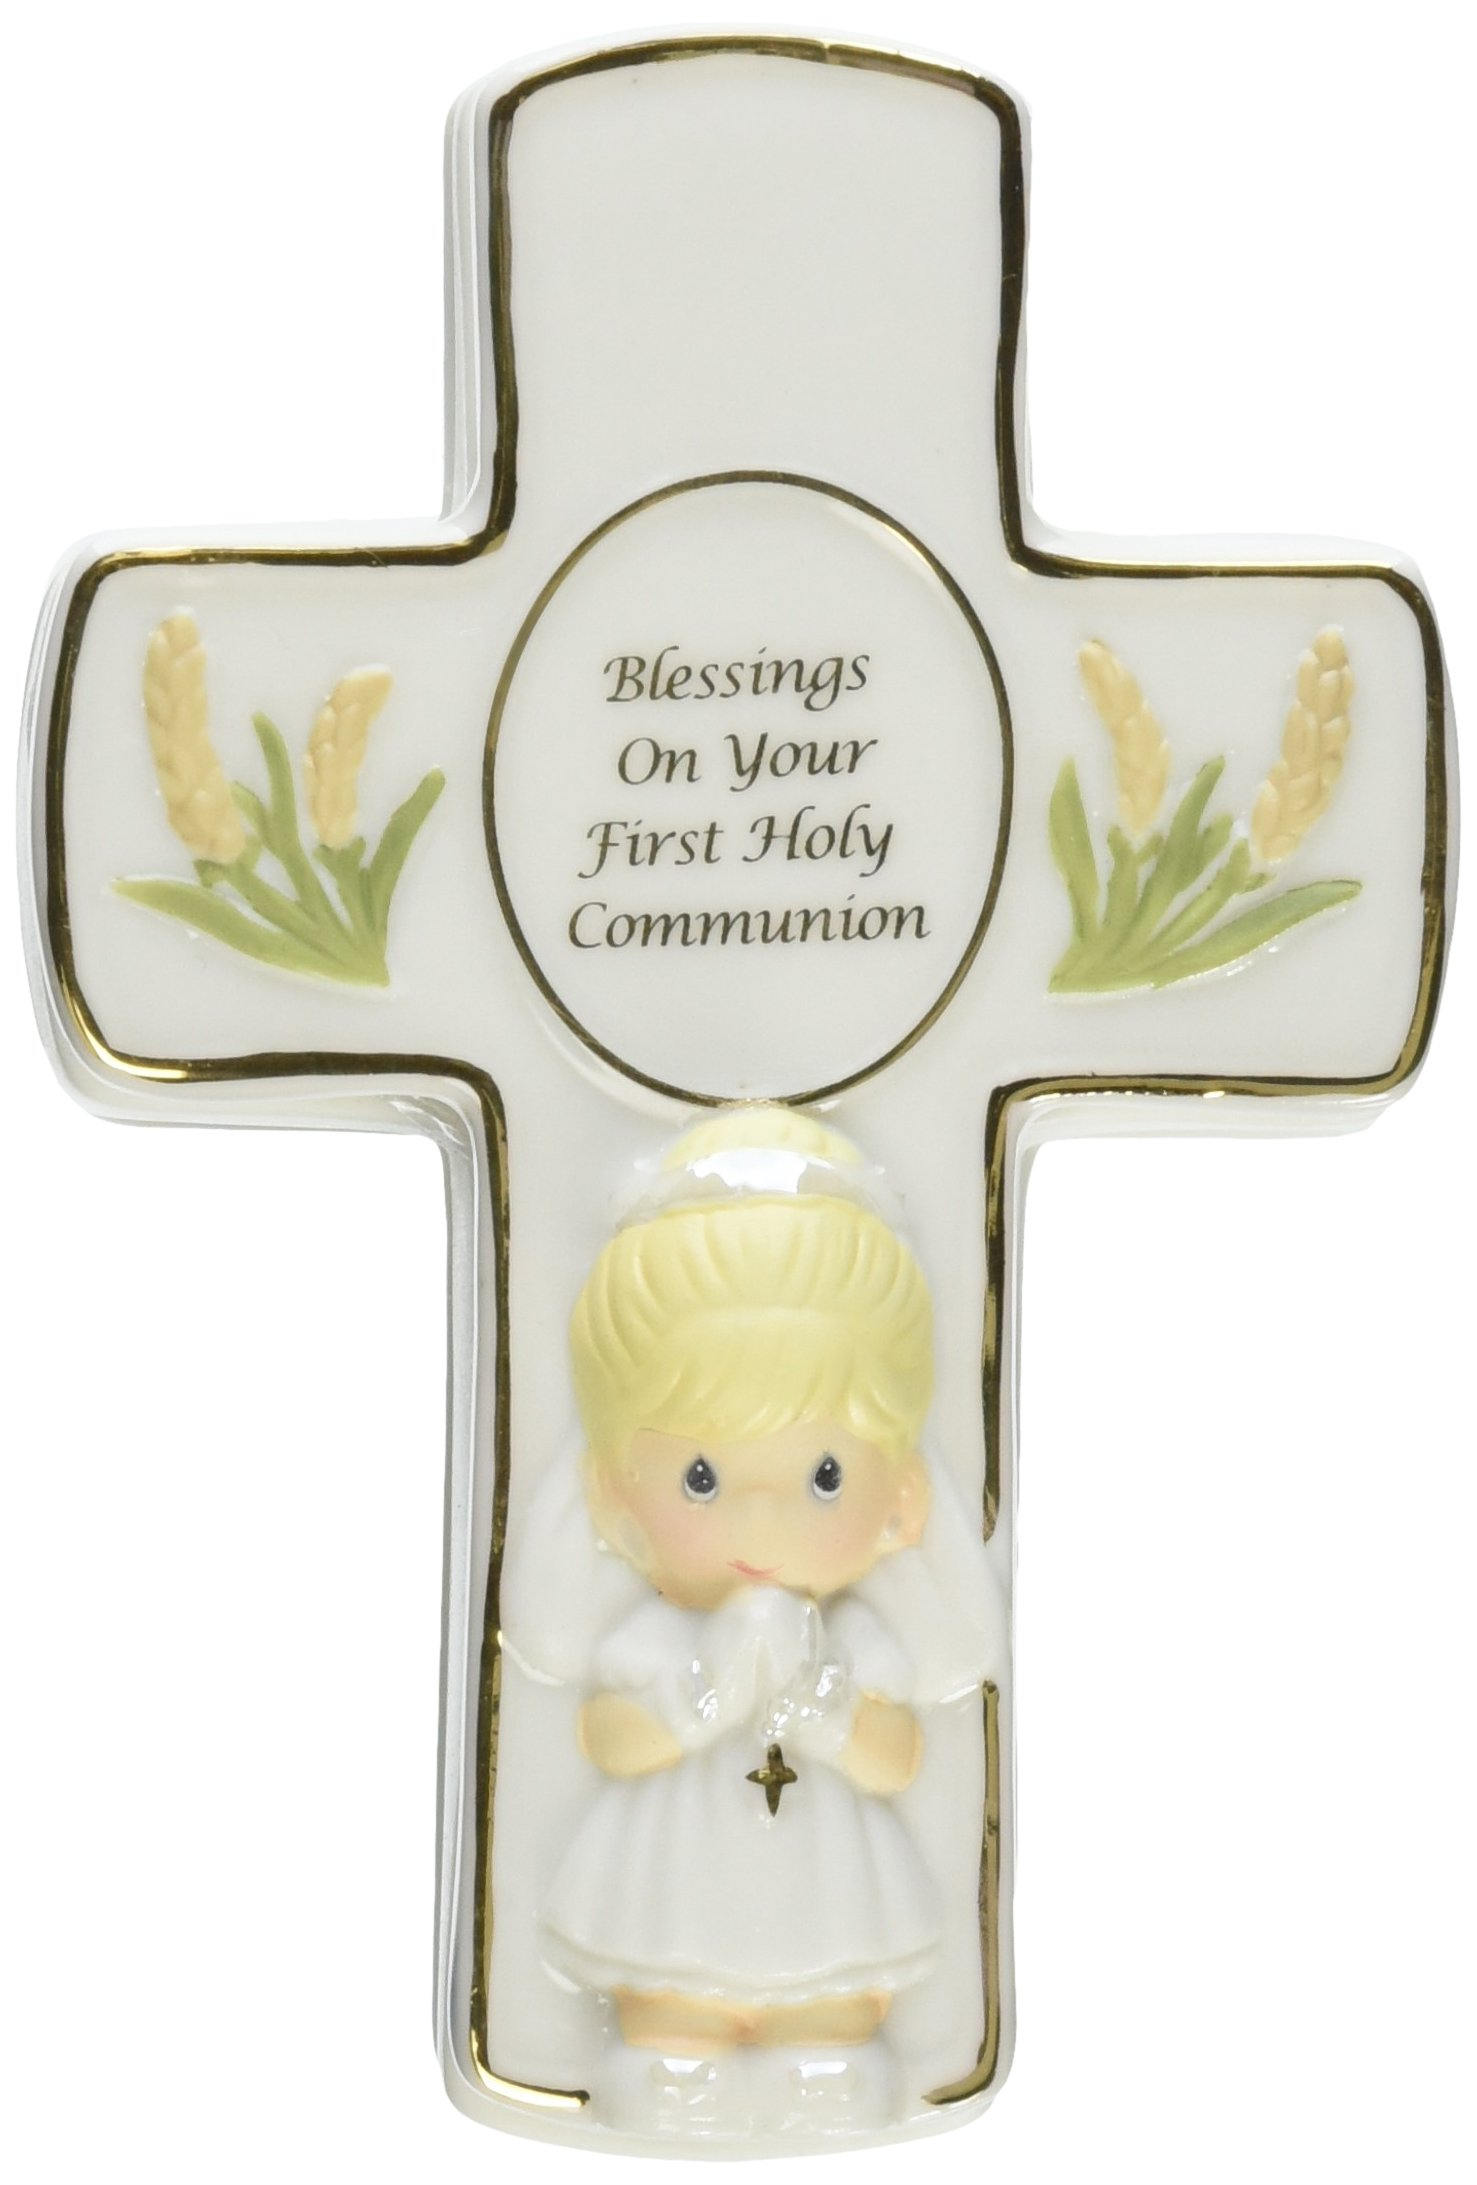 Cheap holy communion gifts find holy communion gifts deals on precious moments communion gifts blessings on your first holy communion bisque biocorpaavc